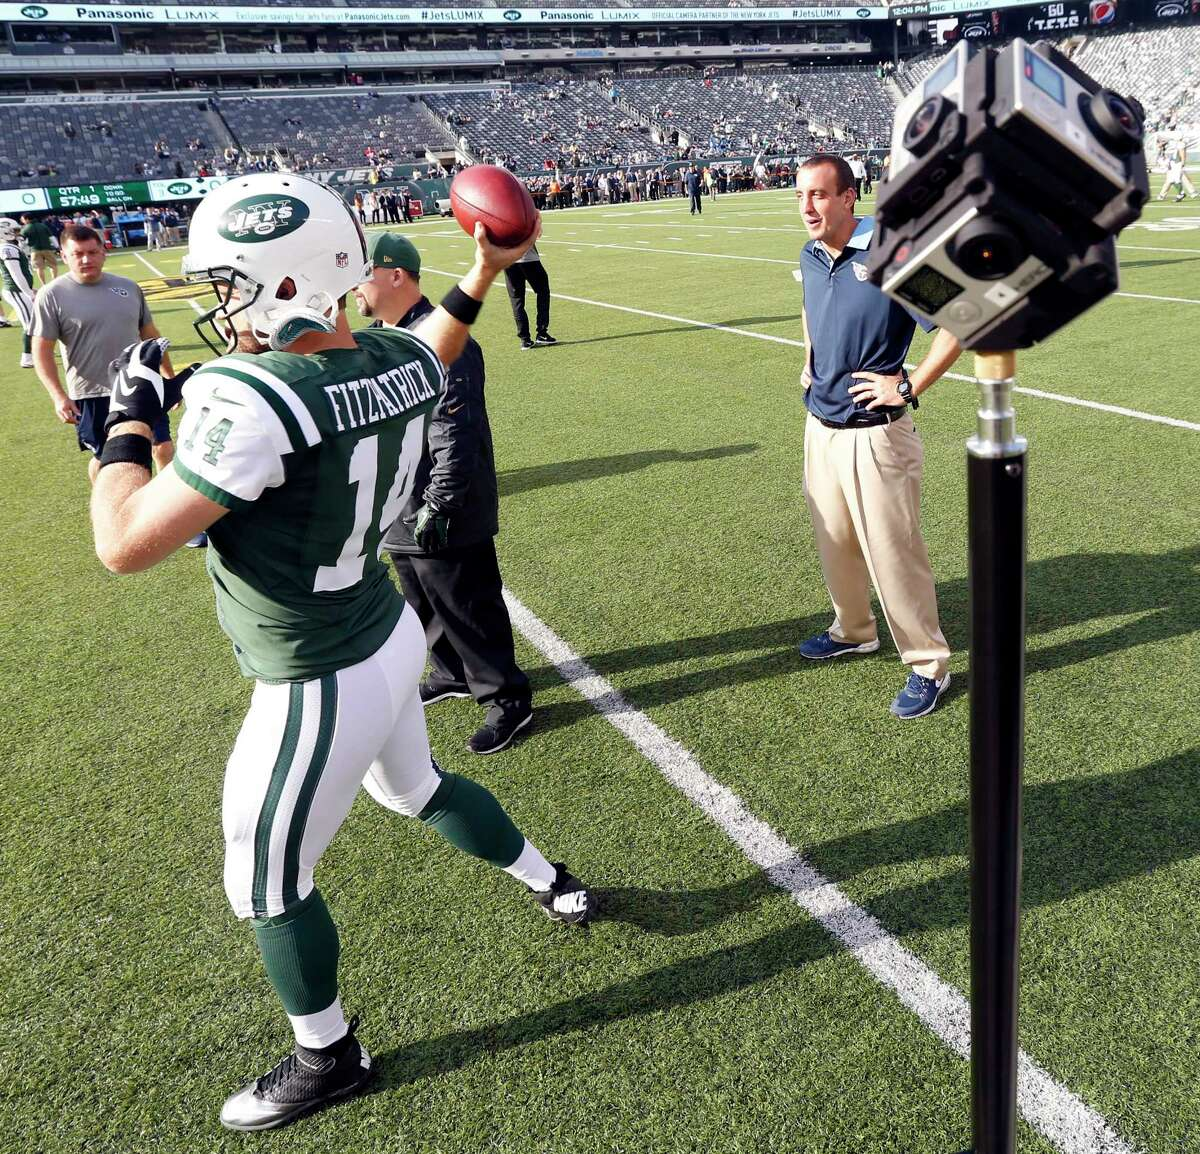 New York Jets quarterback Ryan Fitzpatrick warms up before Sunday's game against the Tennessee Titans as cameras film him.